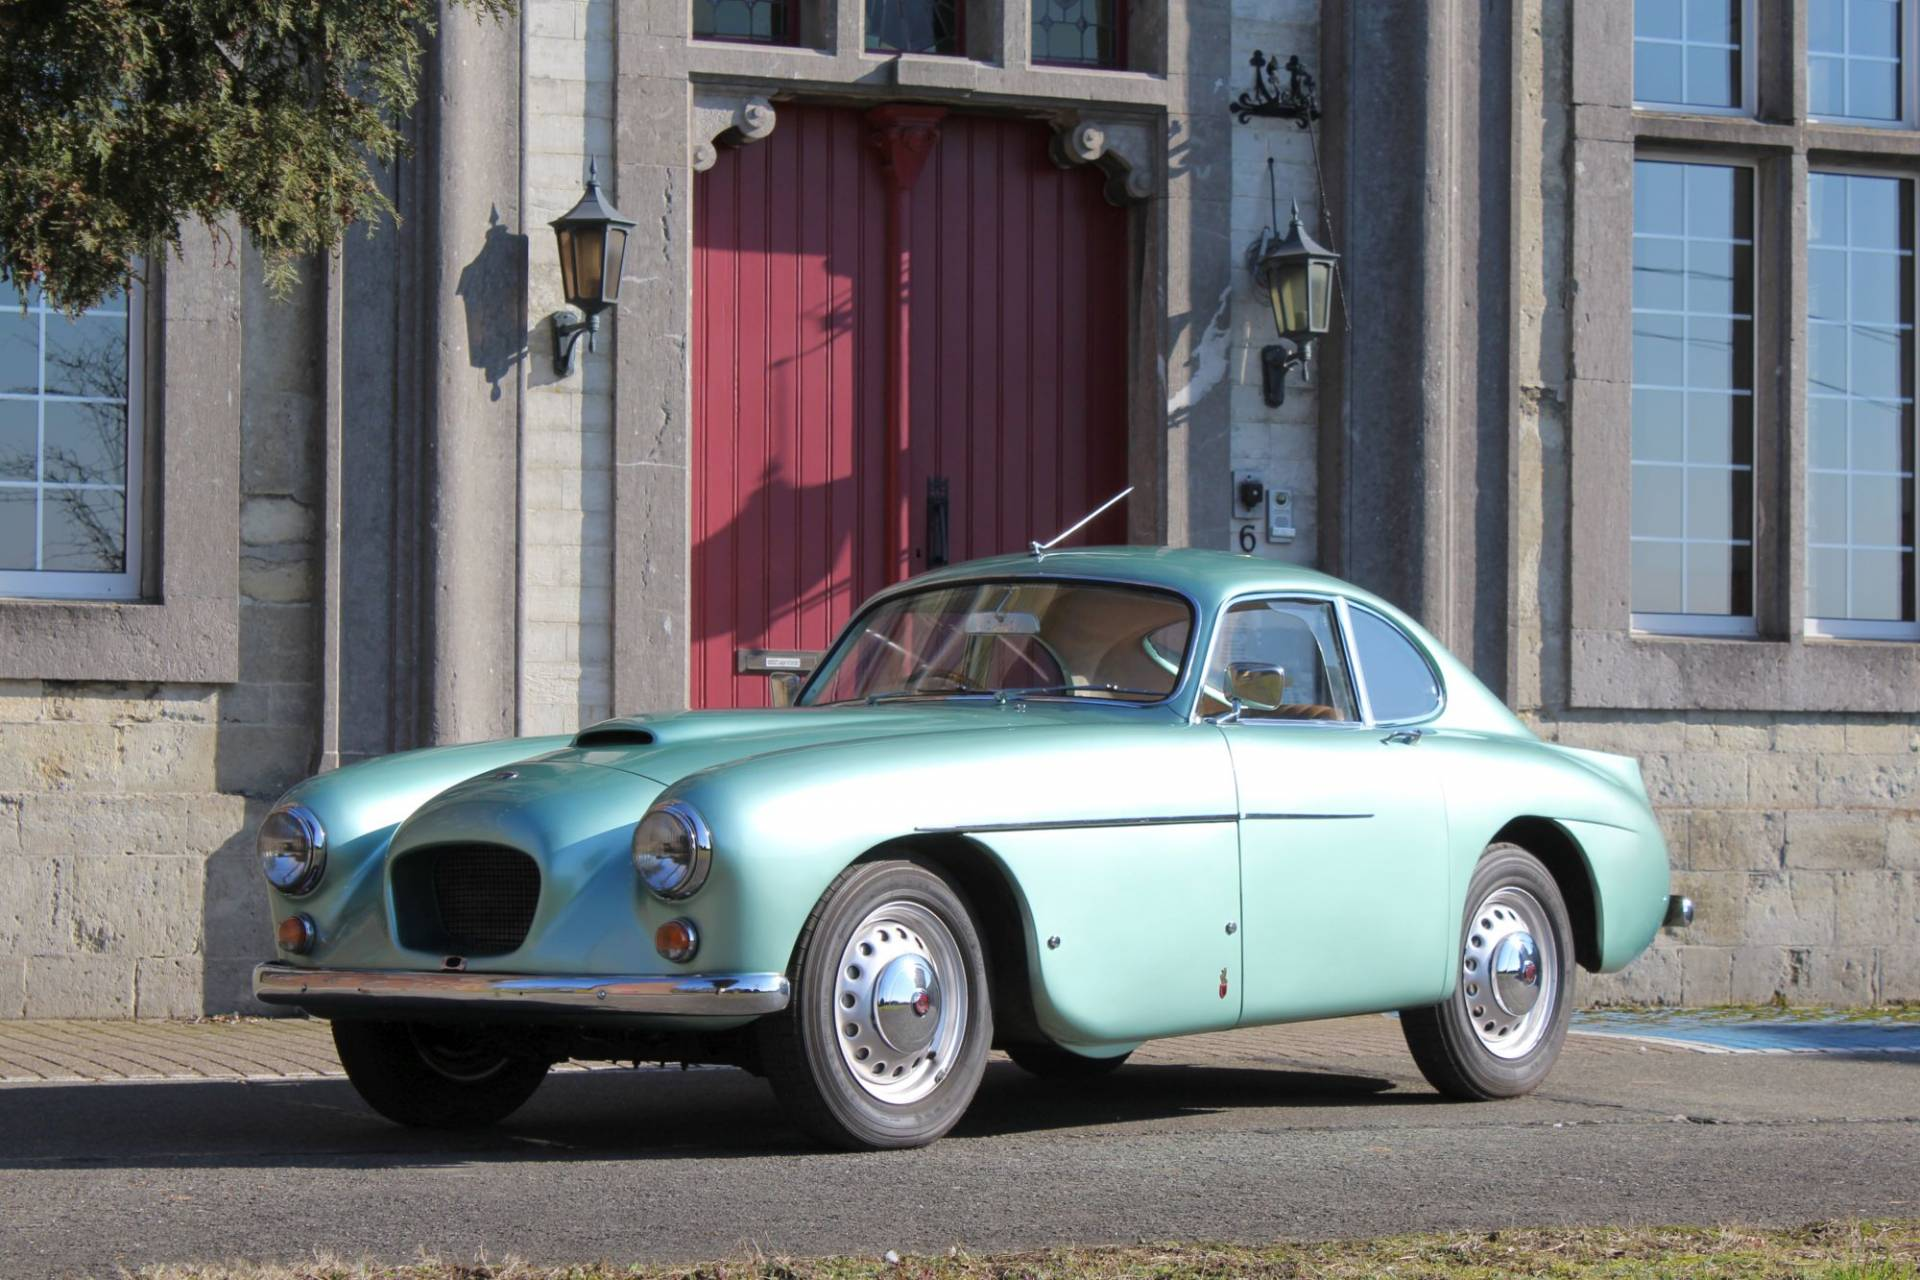 Bristol 404 Coupé - Bristol 404 ex-King Hussein of Jordan